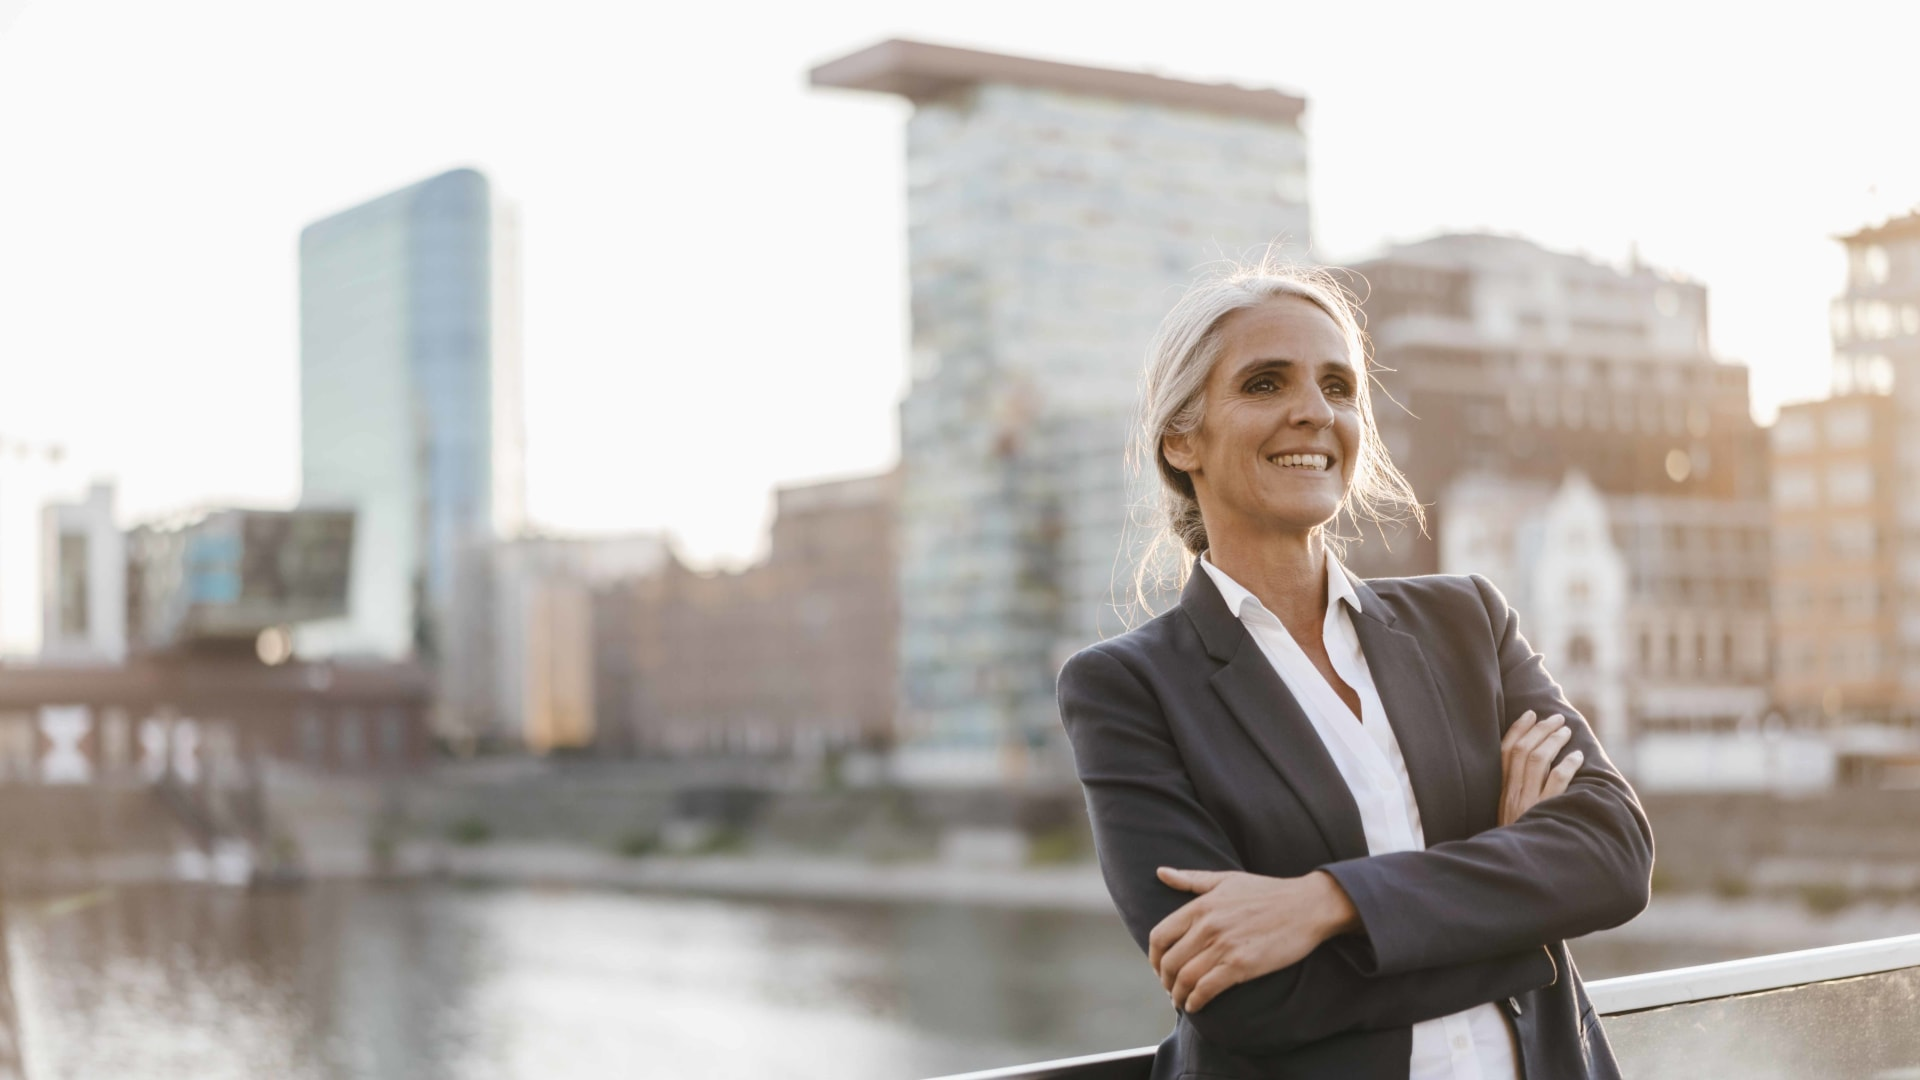 6 Reasons Why 2021 Could Be a Great Time to Grow Your Business